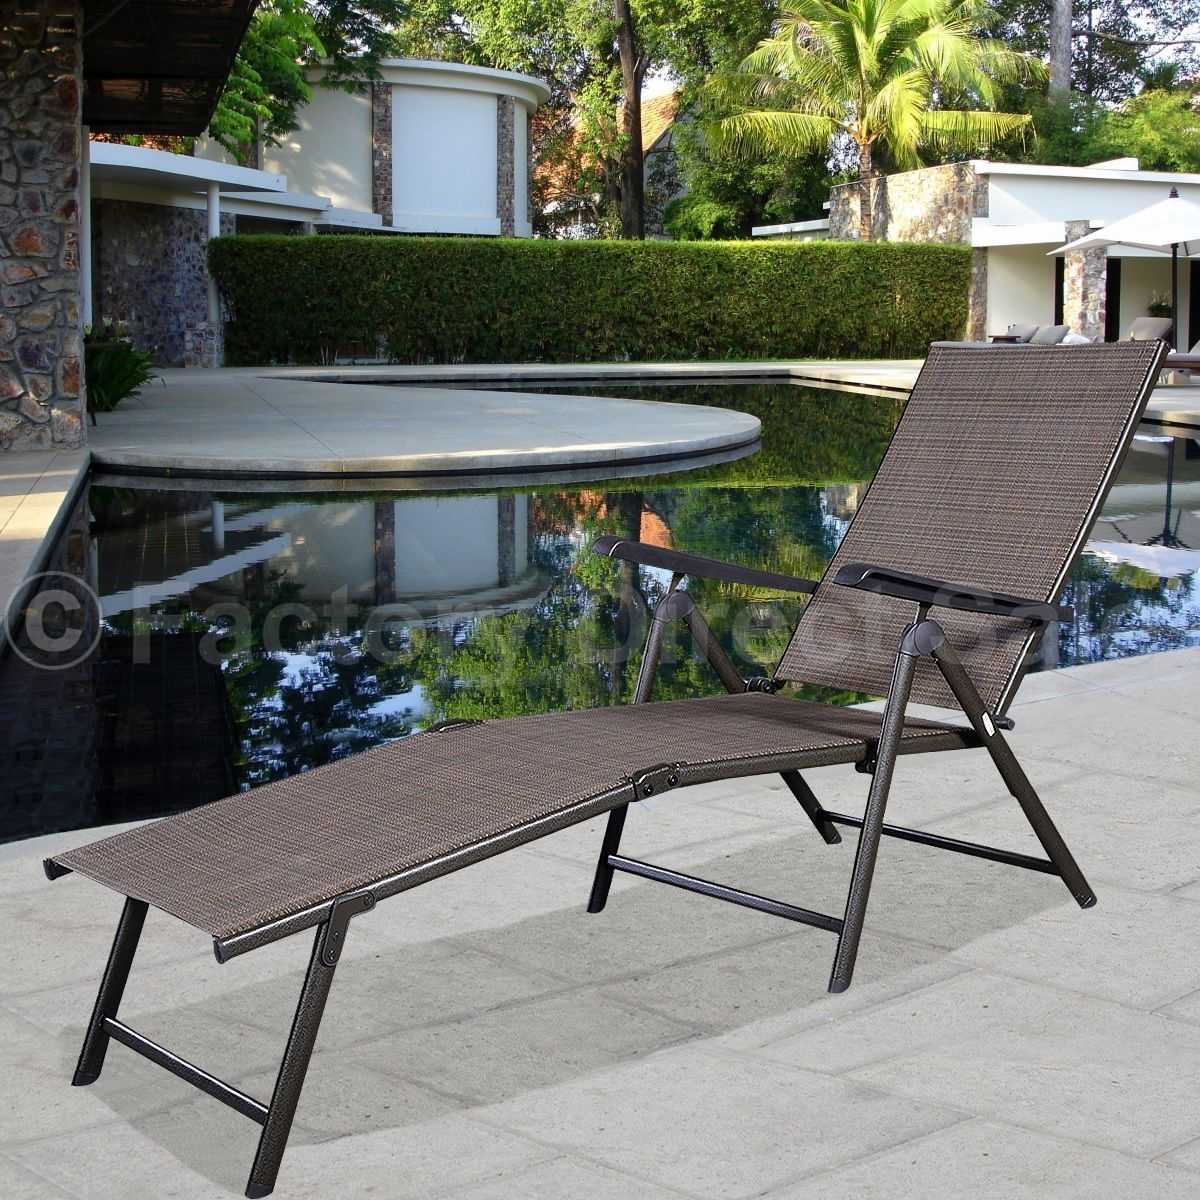 Pool Chaise Lounge Chair Recliner Outdoor Patio Furniture Adjustable New 59f3f511c98fc4114900d3cf